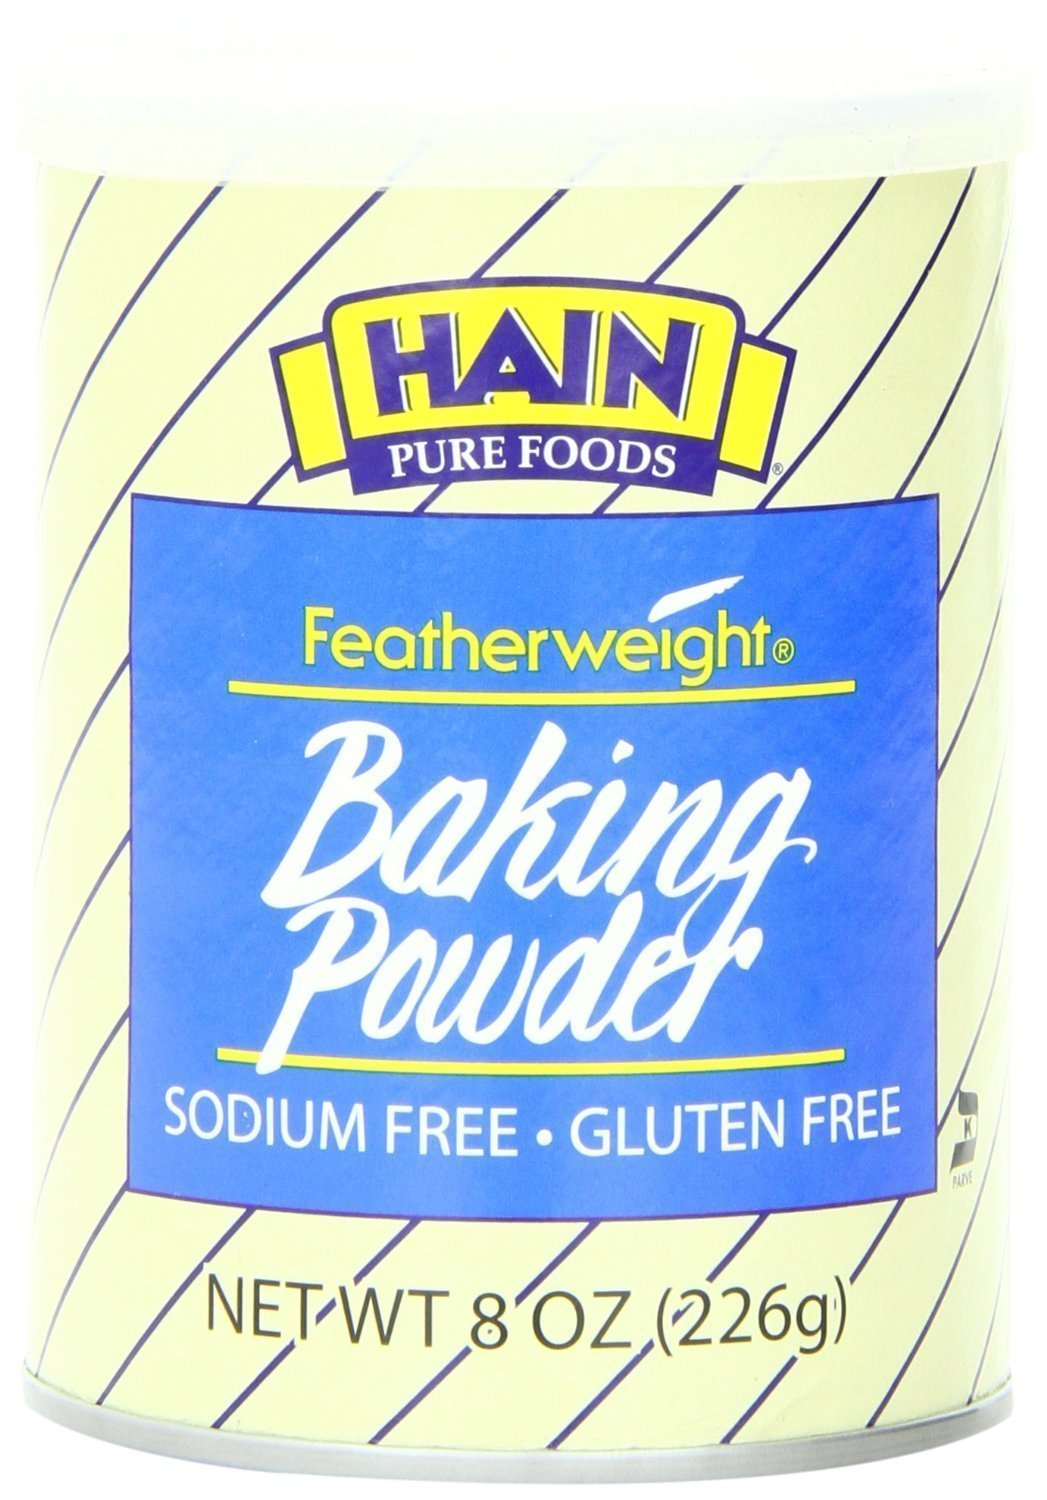 Hain Pure Foods Featherweight Baking Powder, 8 Ounce (2 Pack)